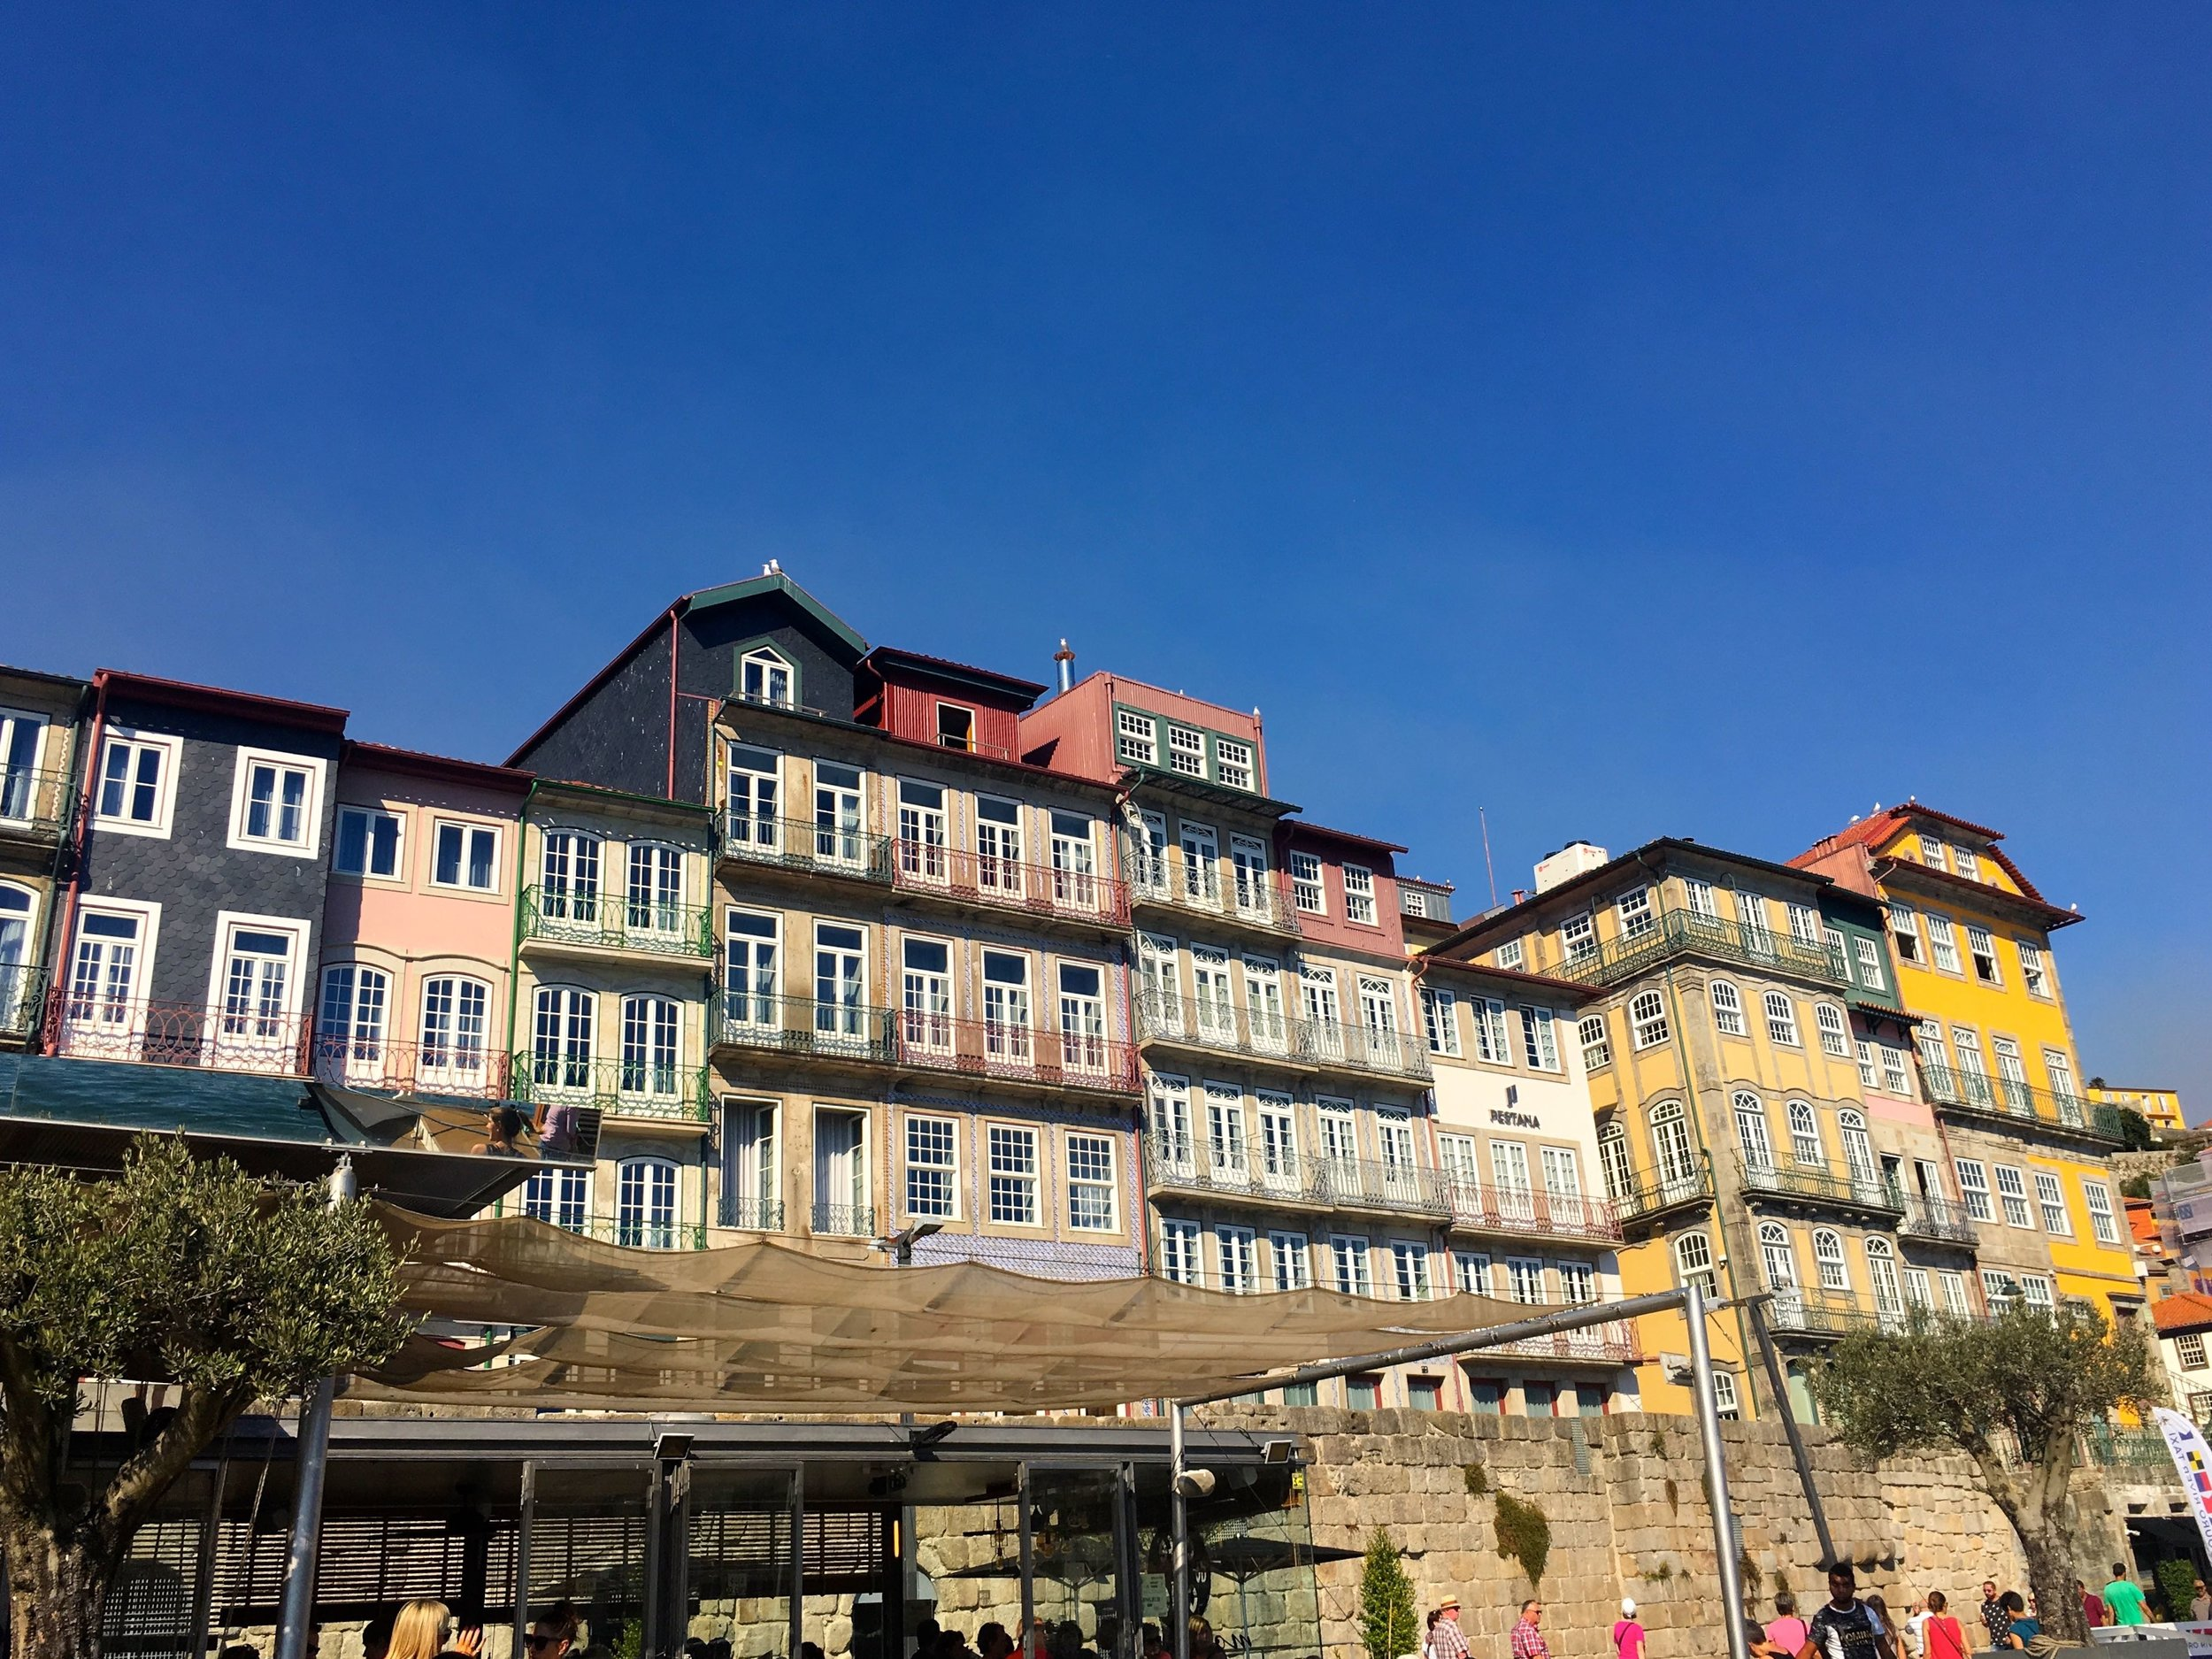 Pastel building facades on the river douro front